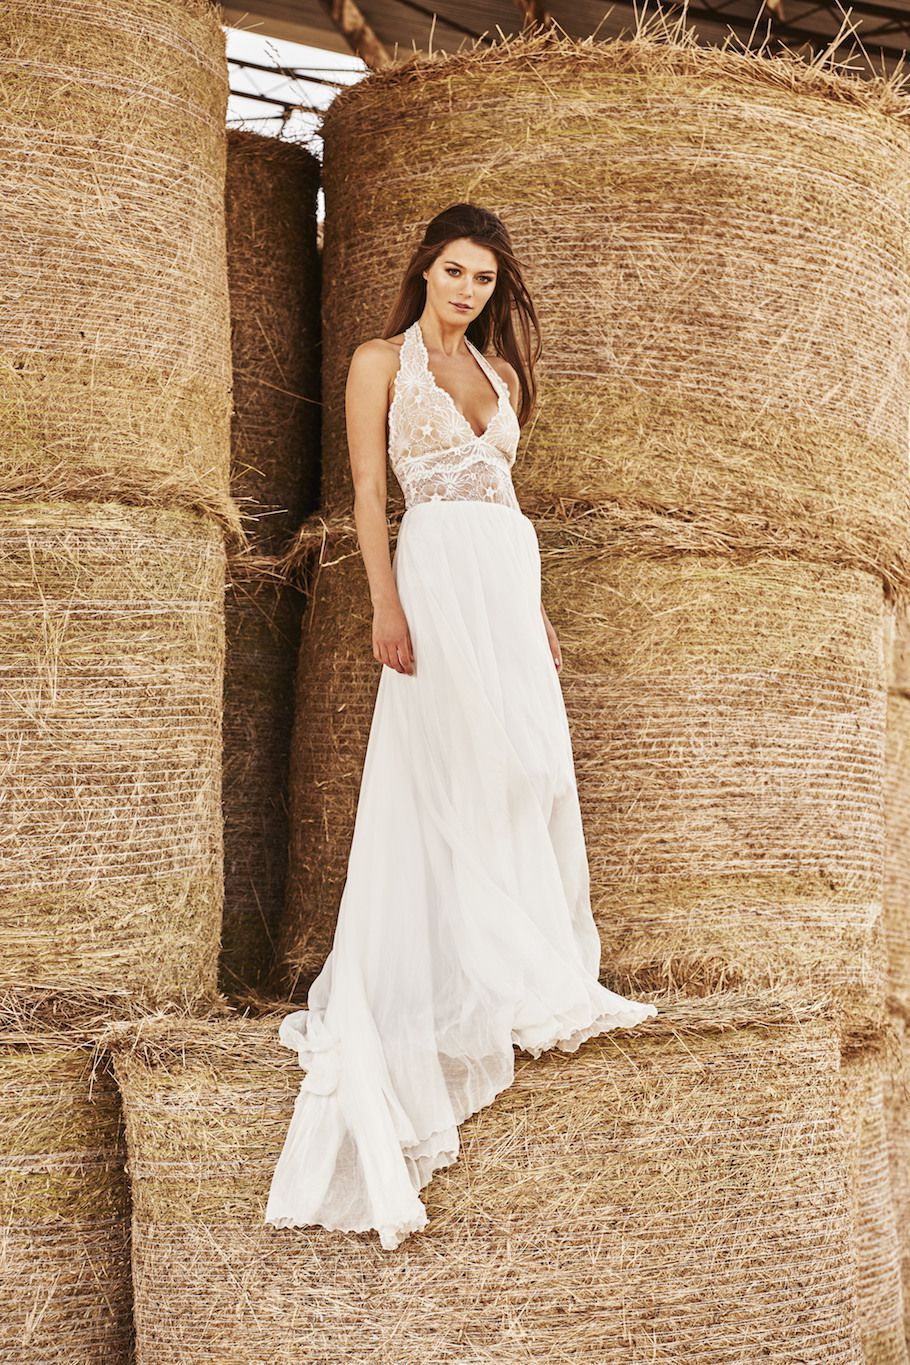 99+ Rustic Lace Wedding Dress - Dress for Country Wedding Guest ...